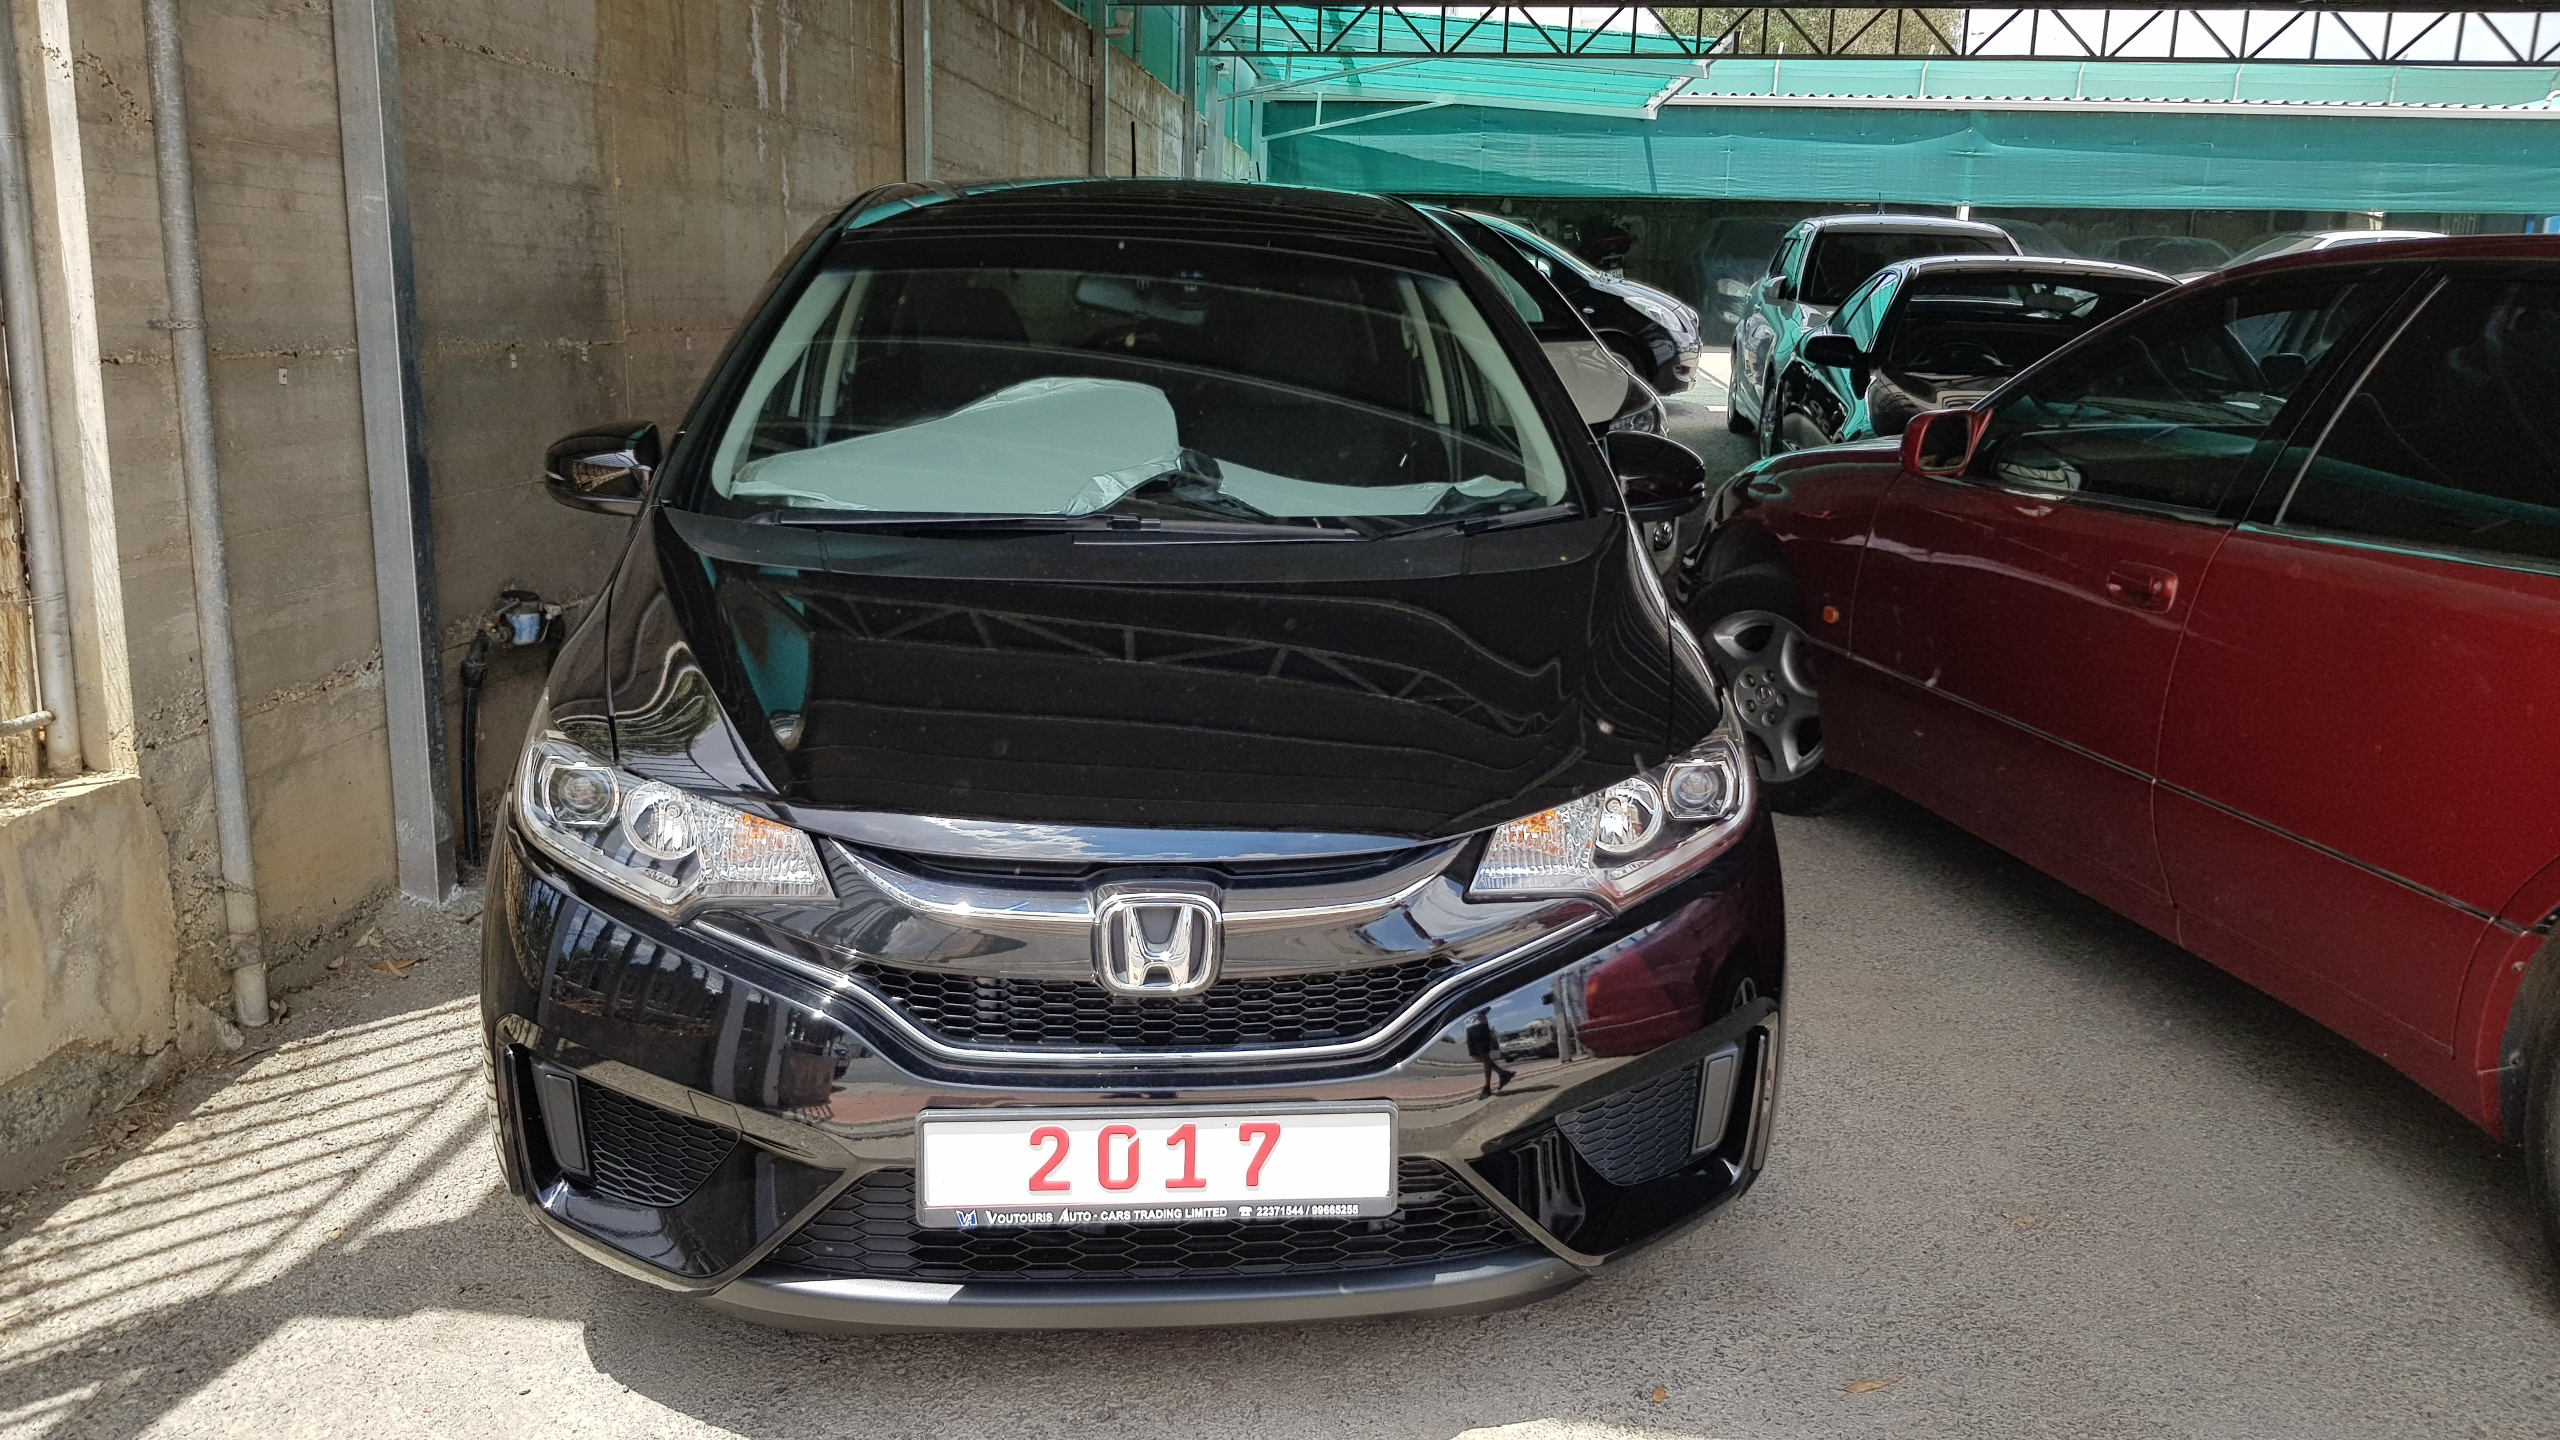 Honda Fit 2017 Black 03